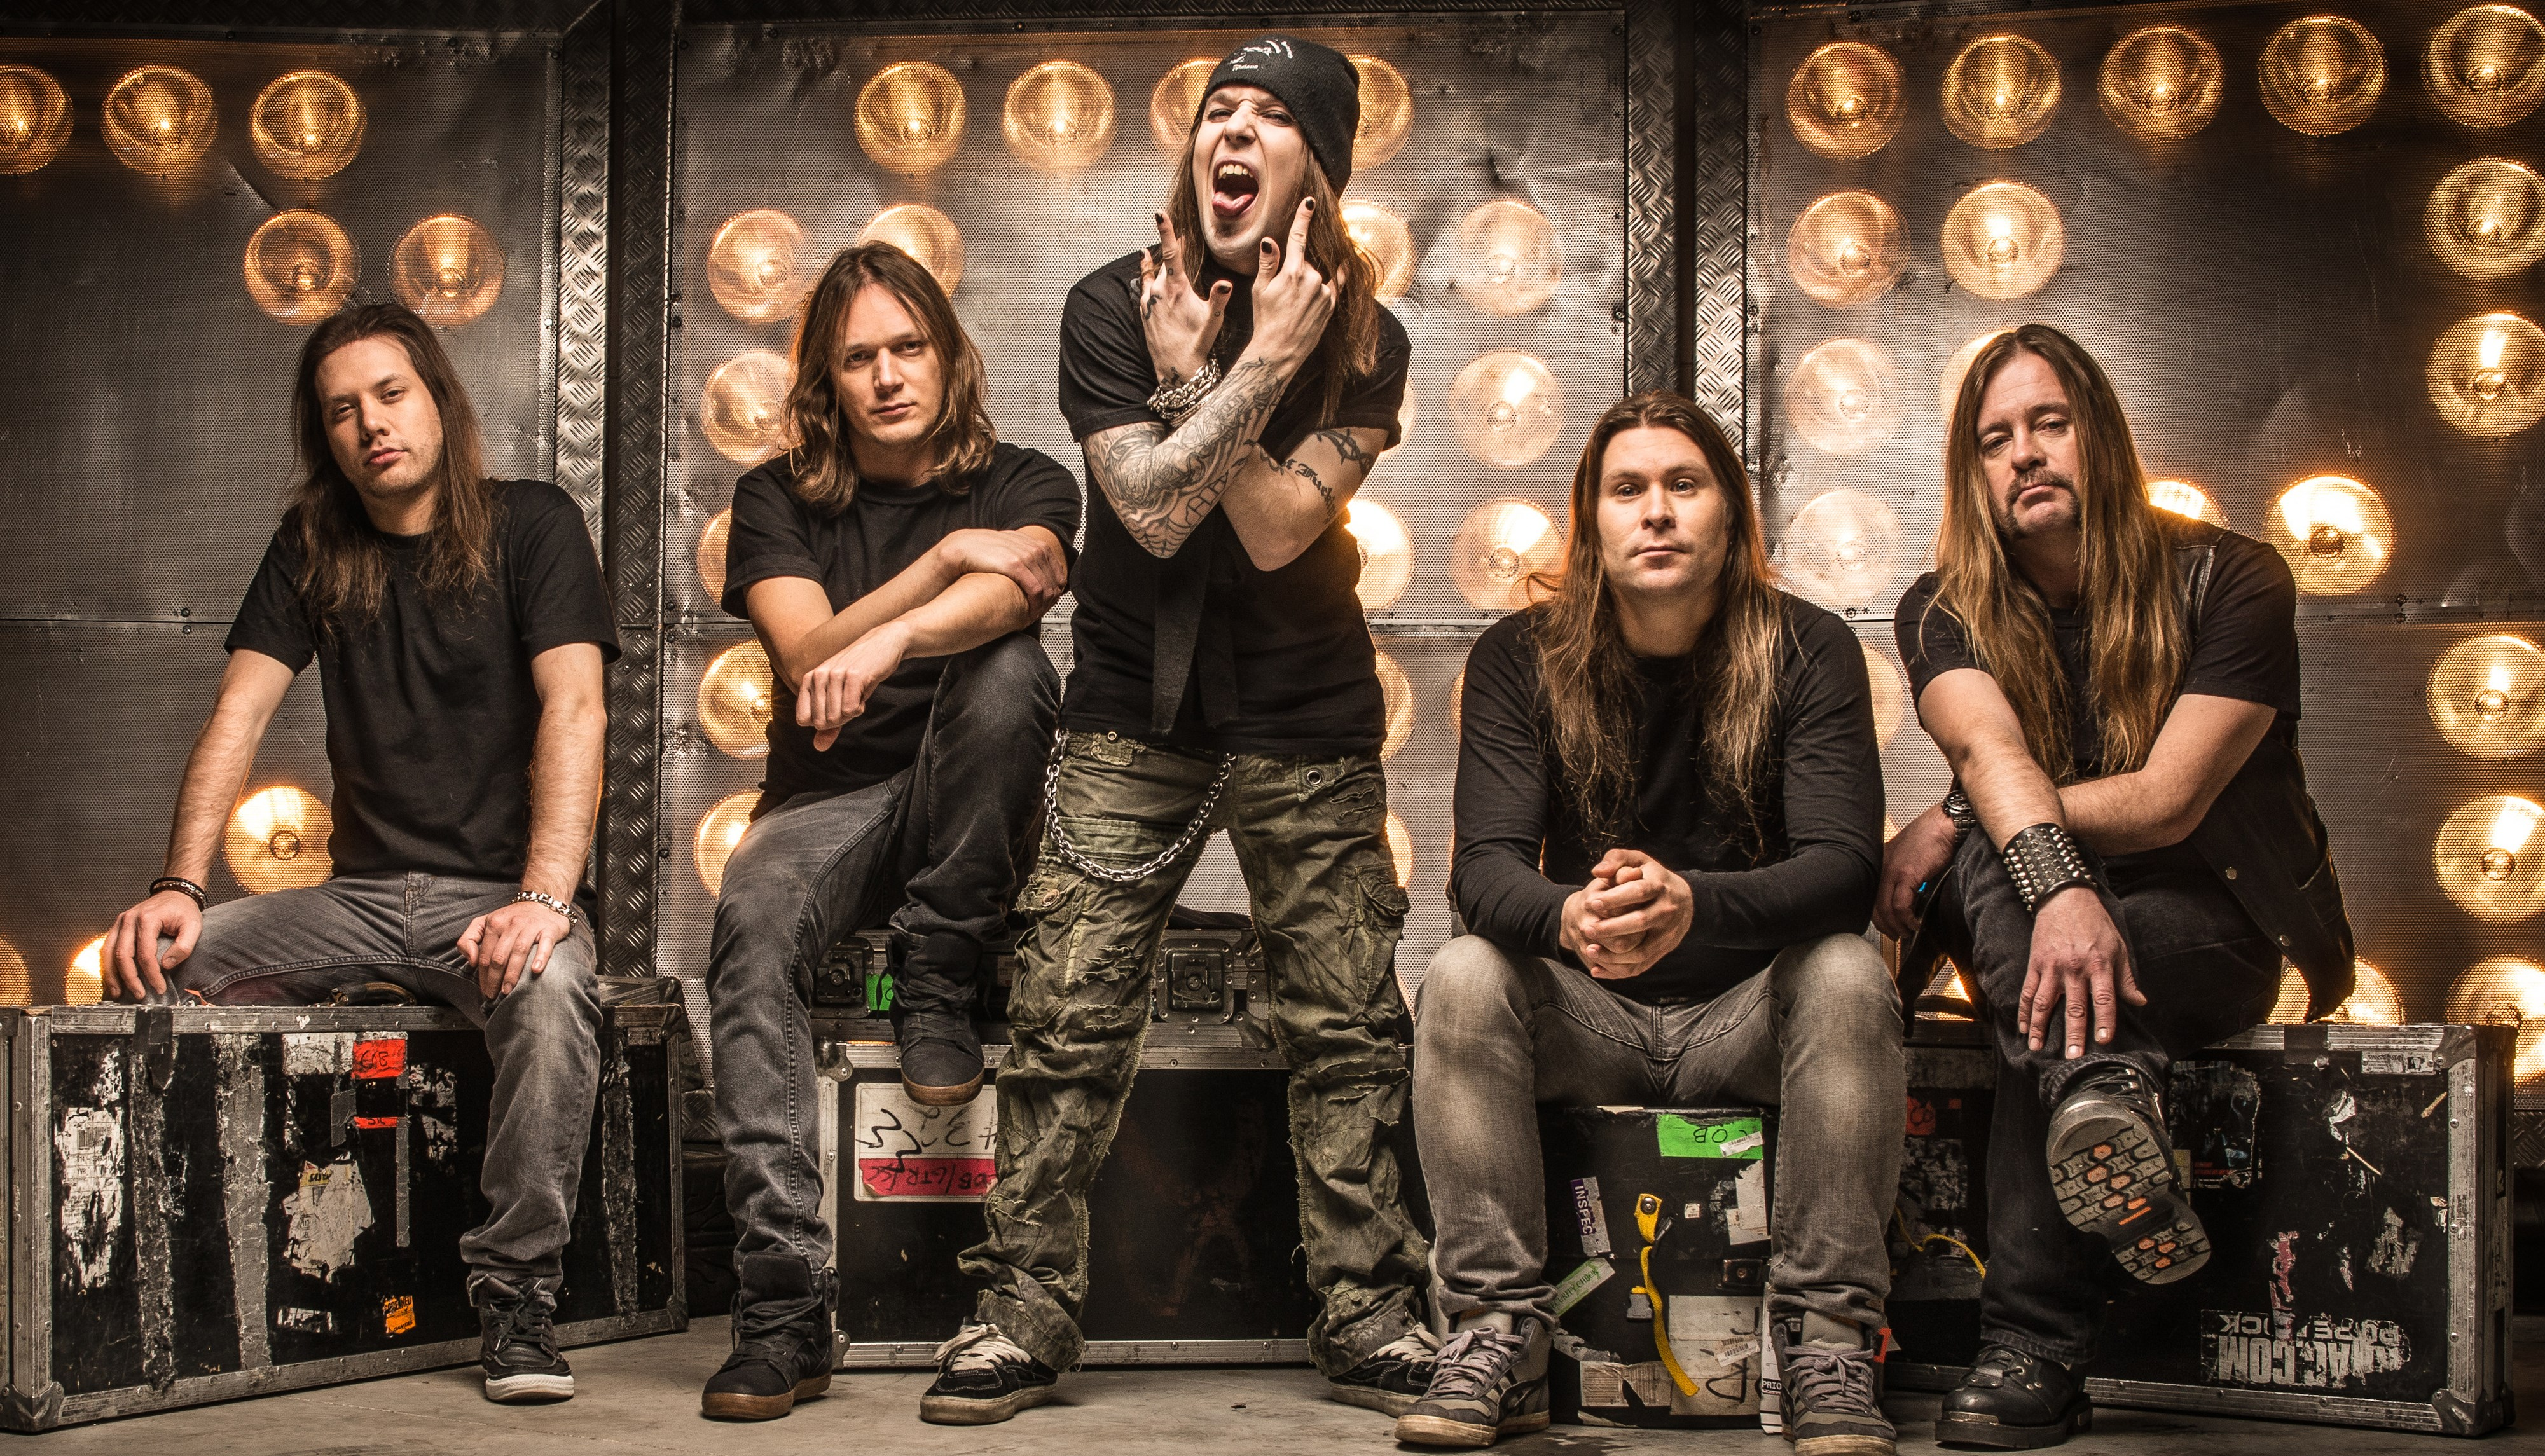 The Horns Up Top 10 Children Of Bodom Nine Circles